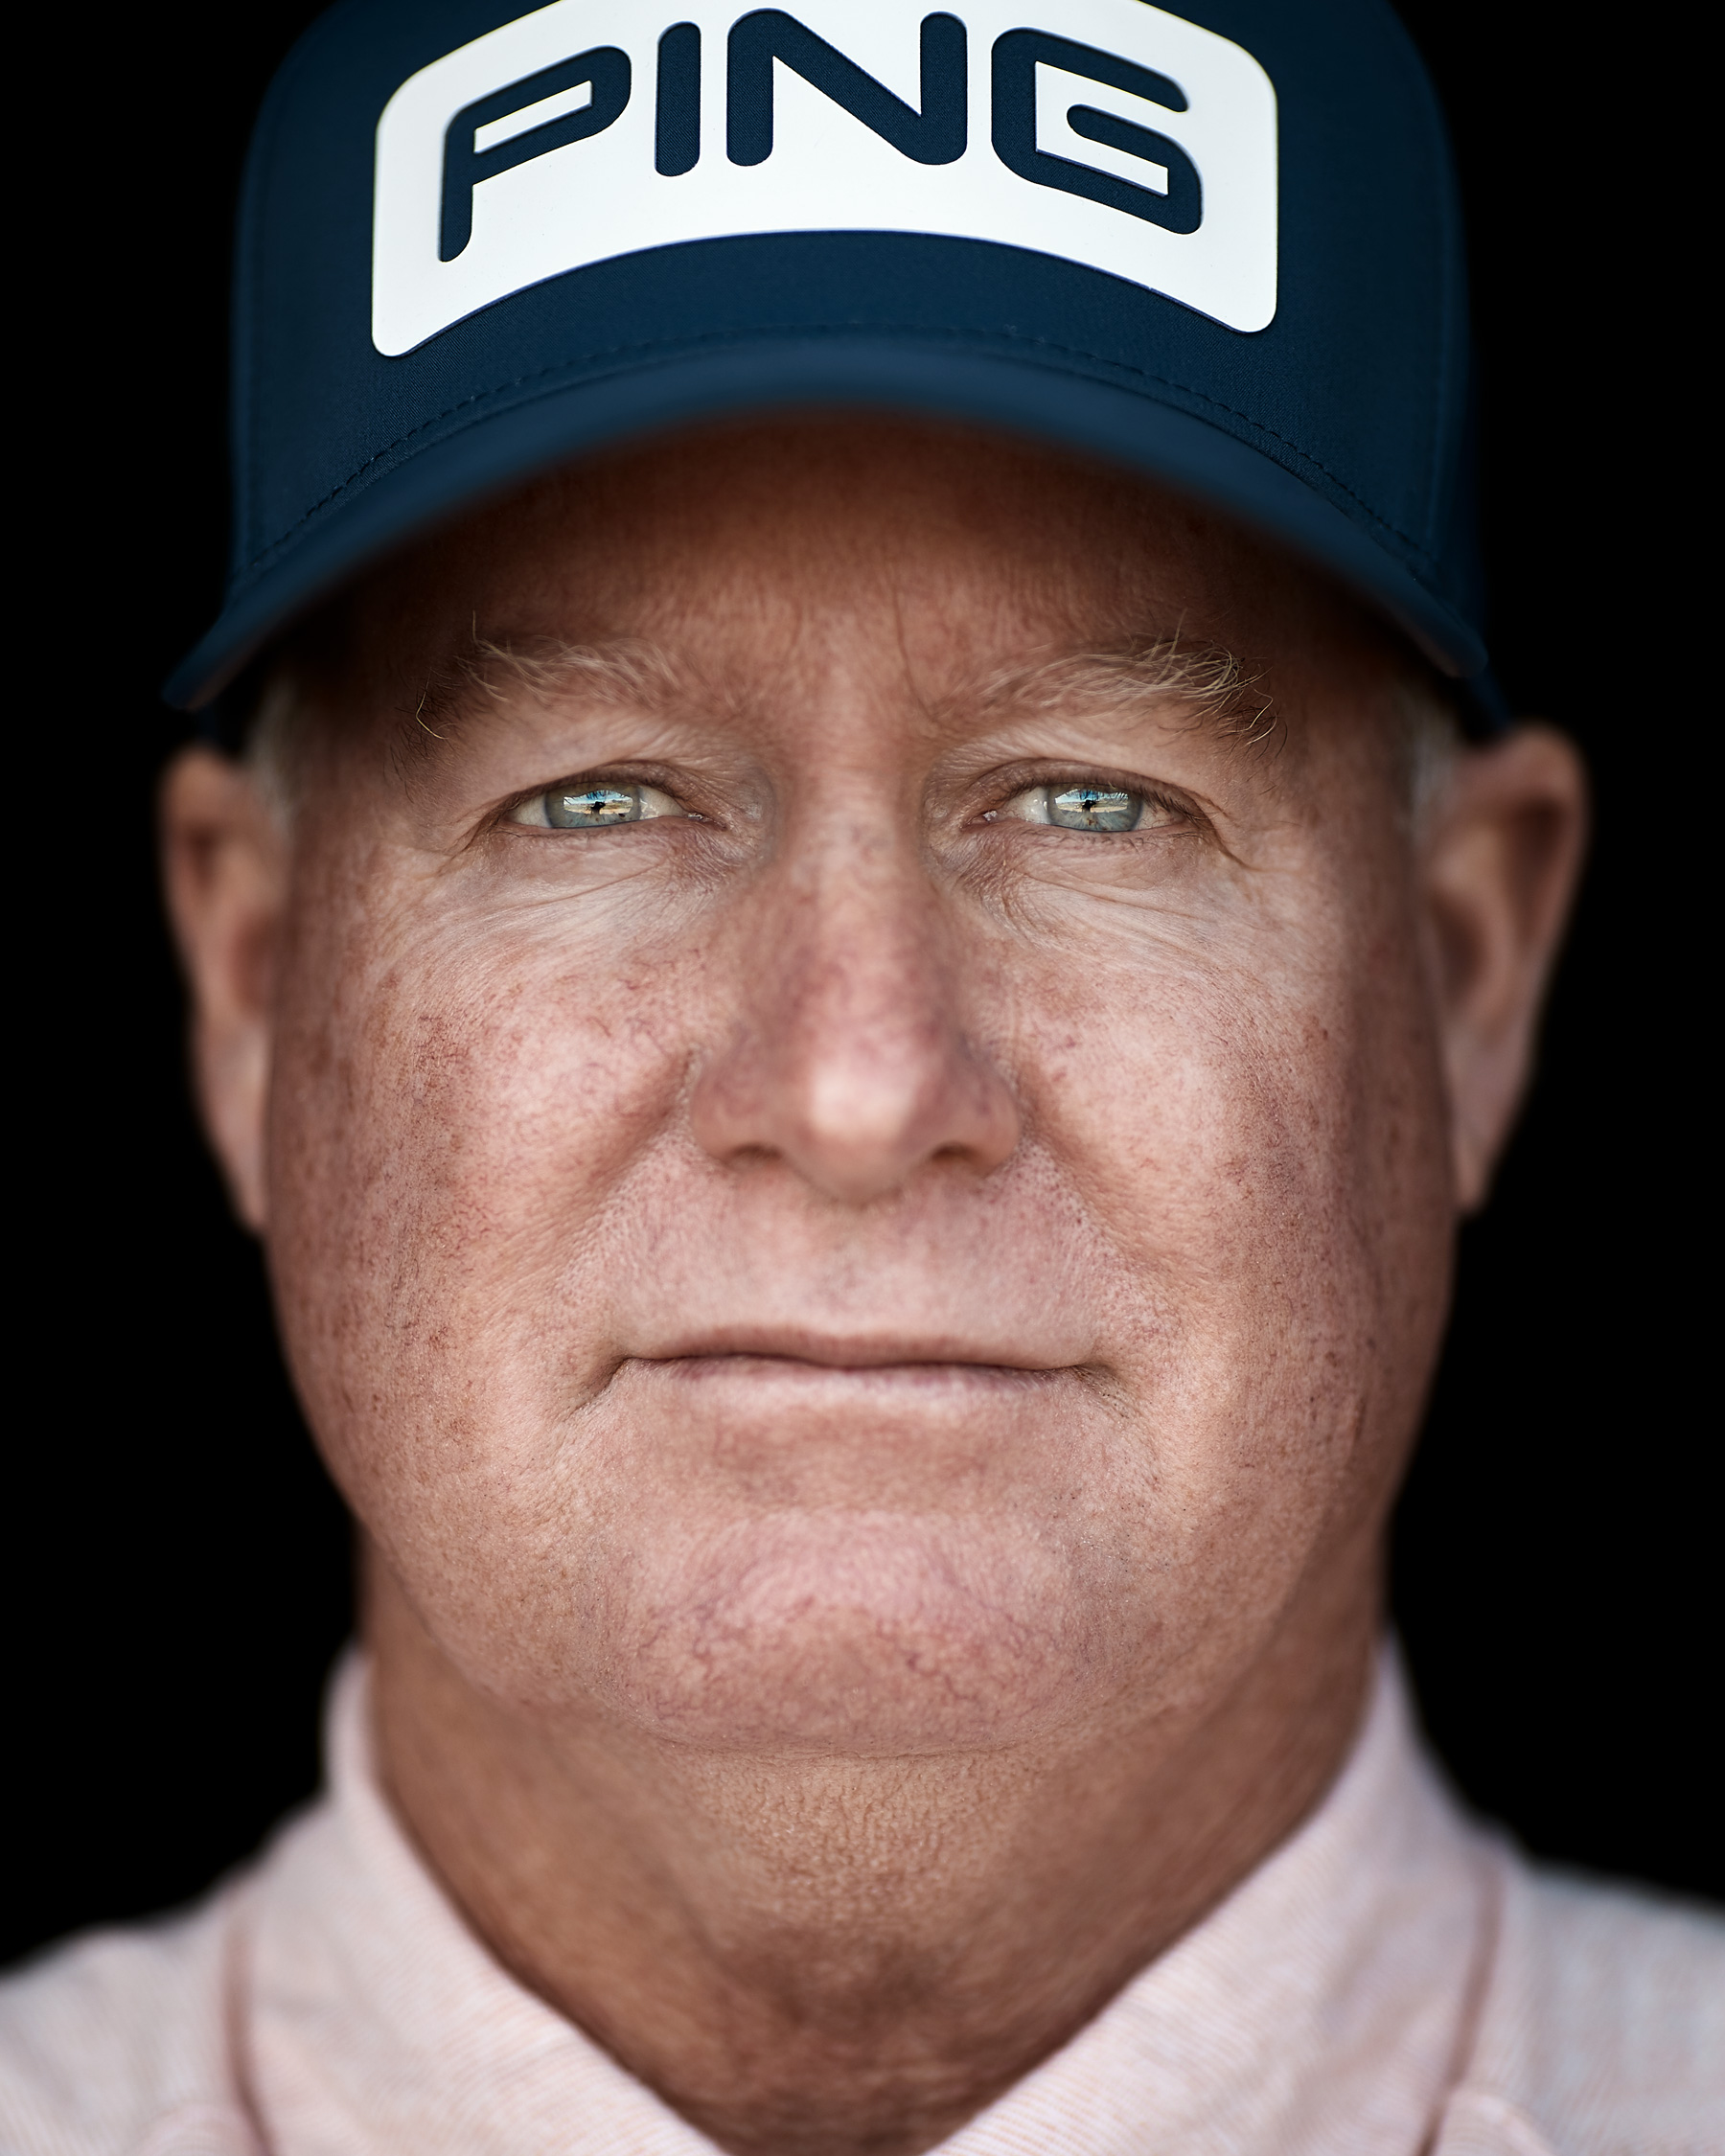 Bob May - GOLF Magazine - Stephen Denton Photography -  Los Angeles, California based  Commercial Photographer